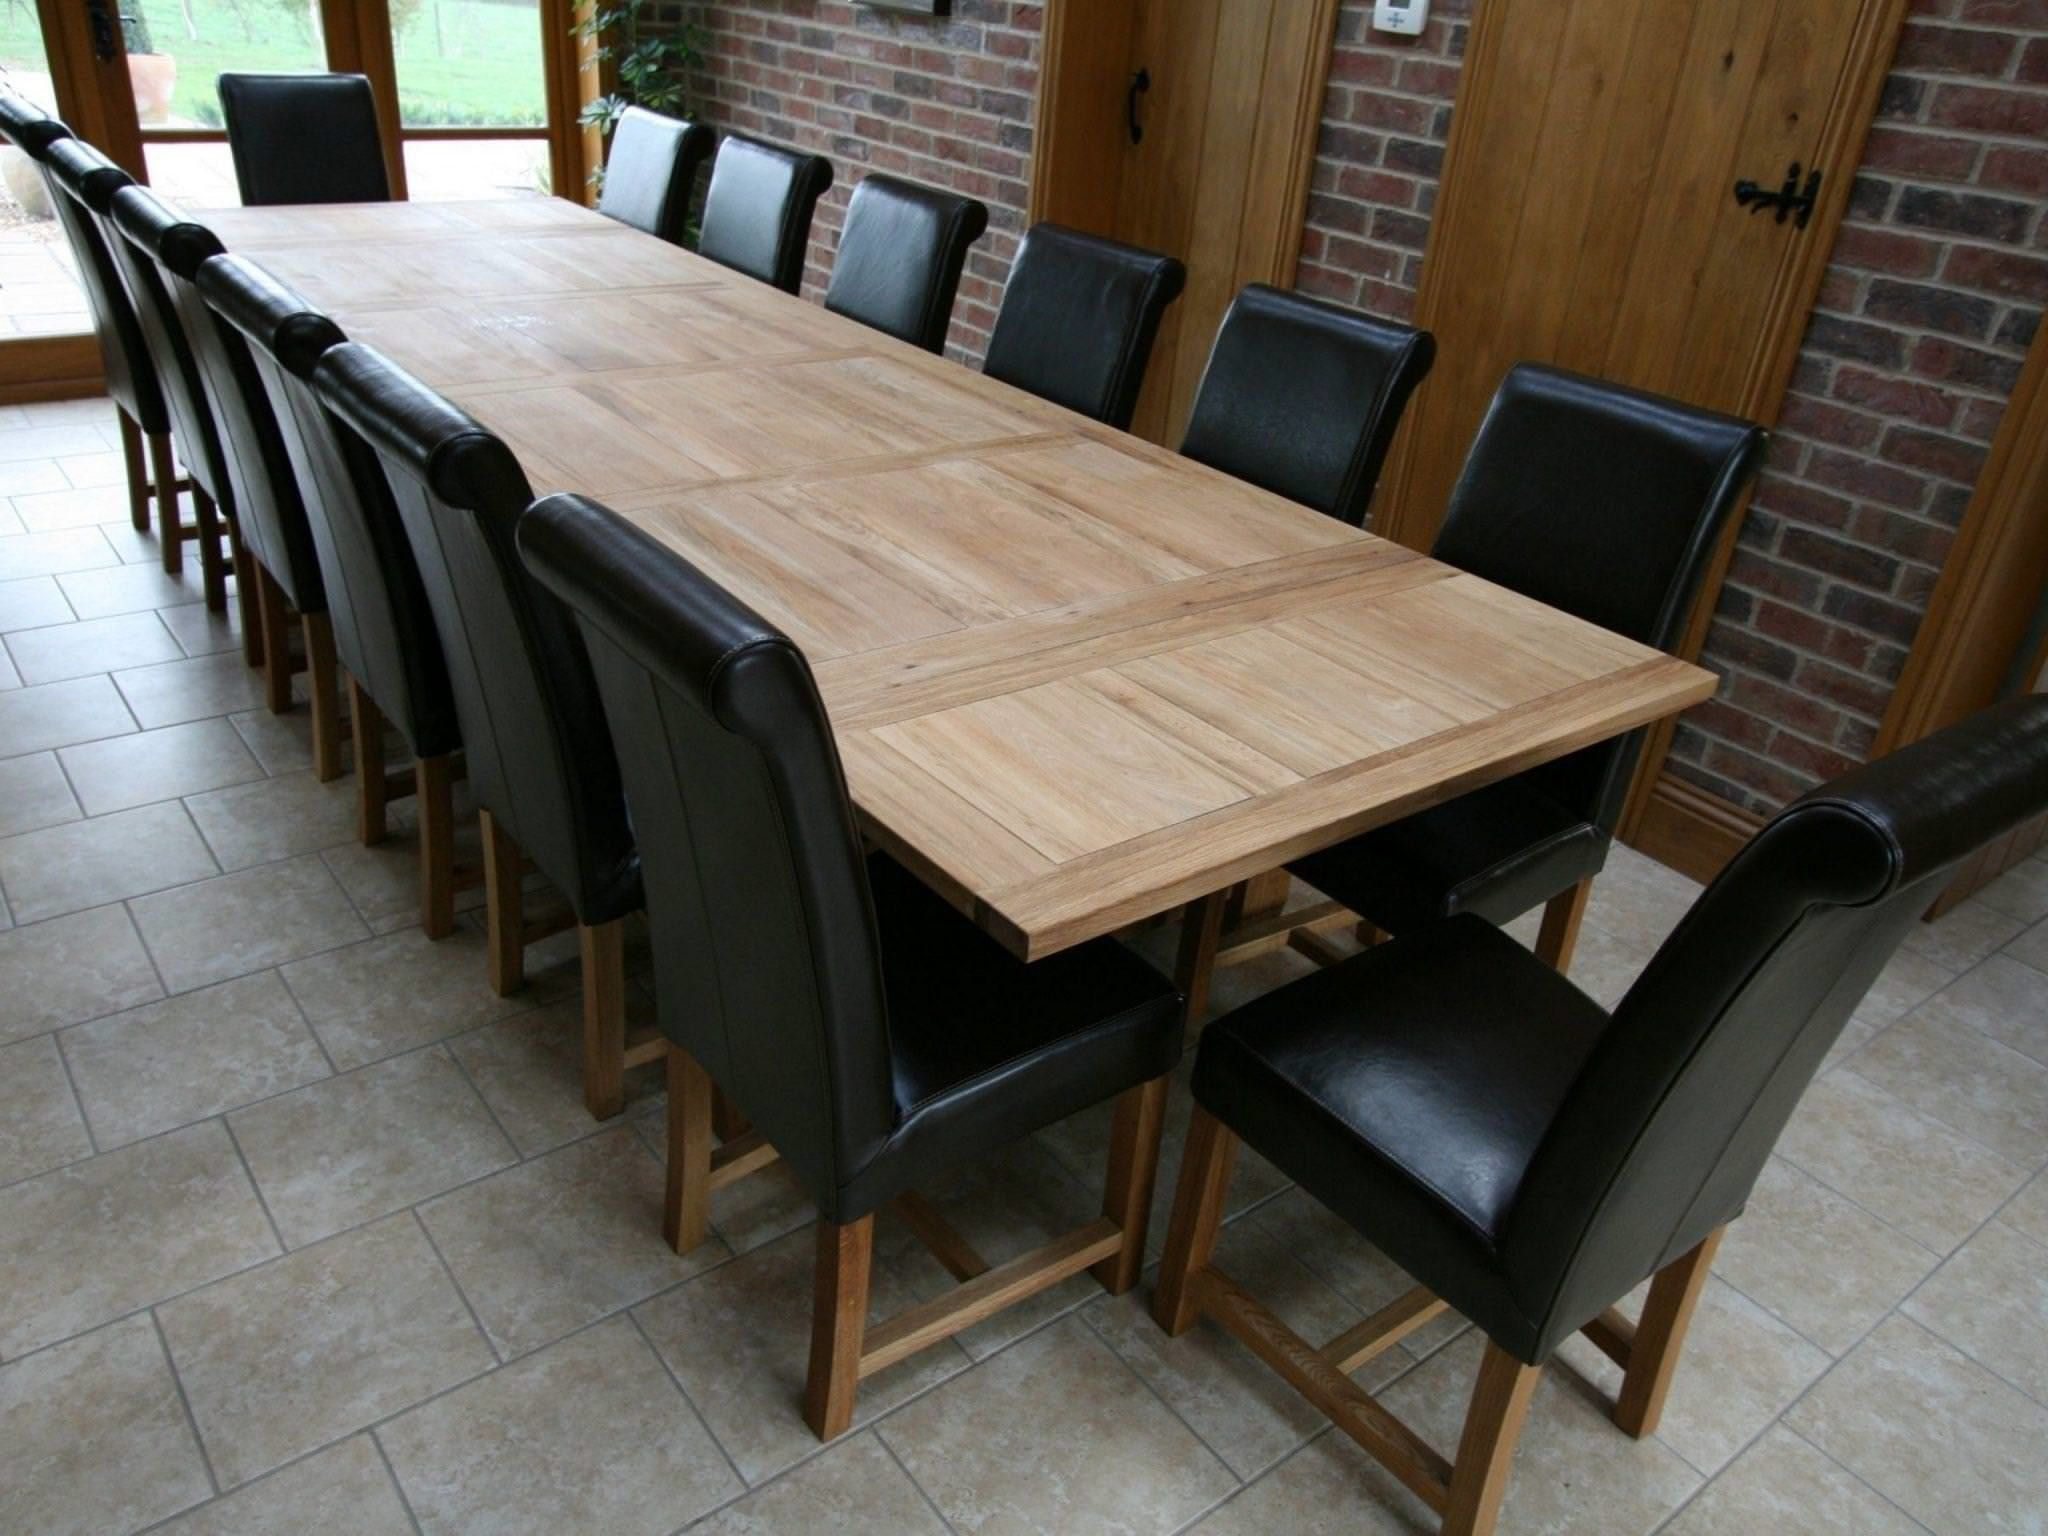 DoorDecorative Dining Room Table For Antique ft quot